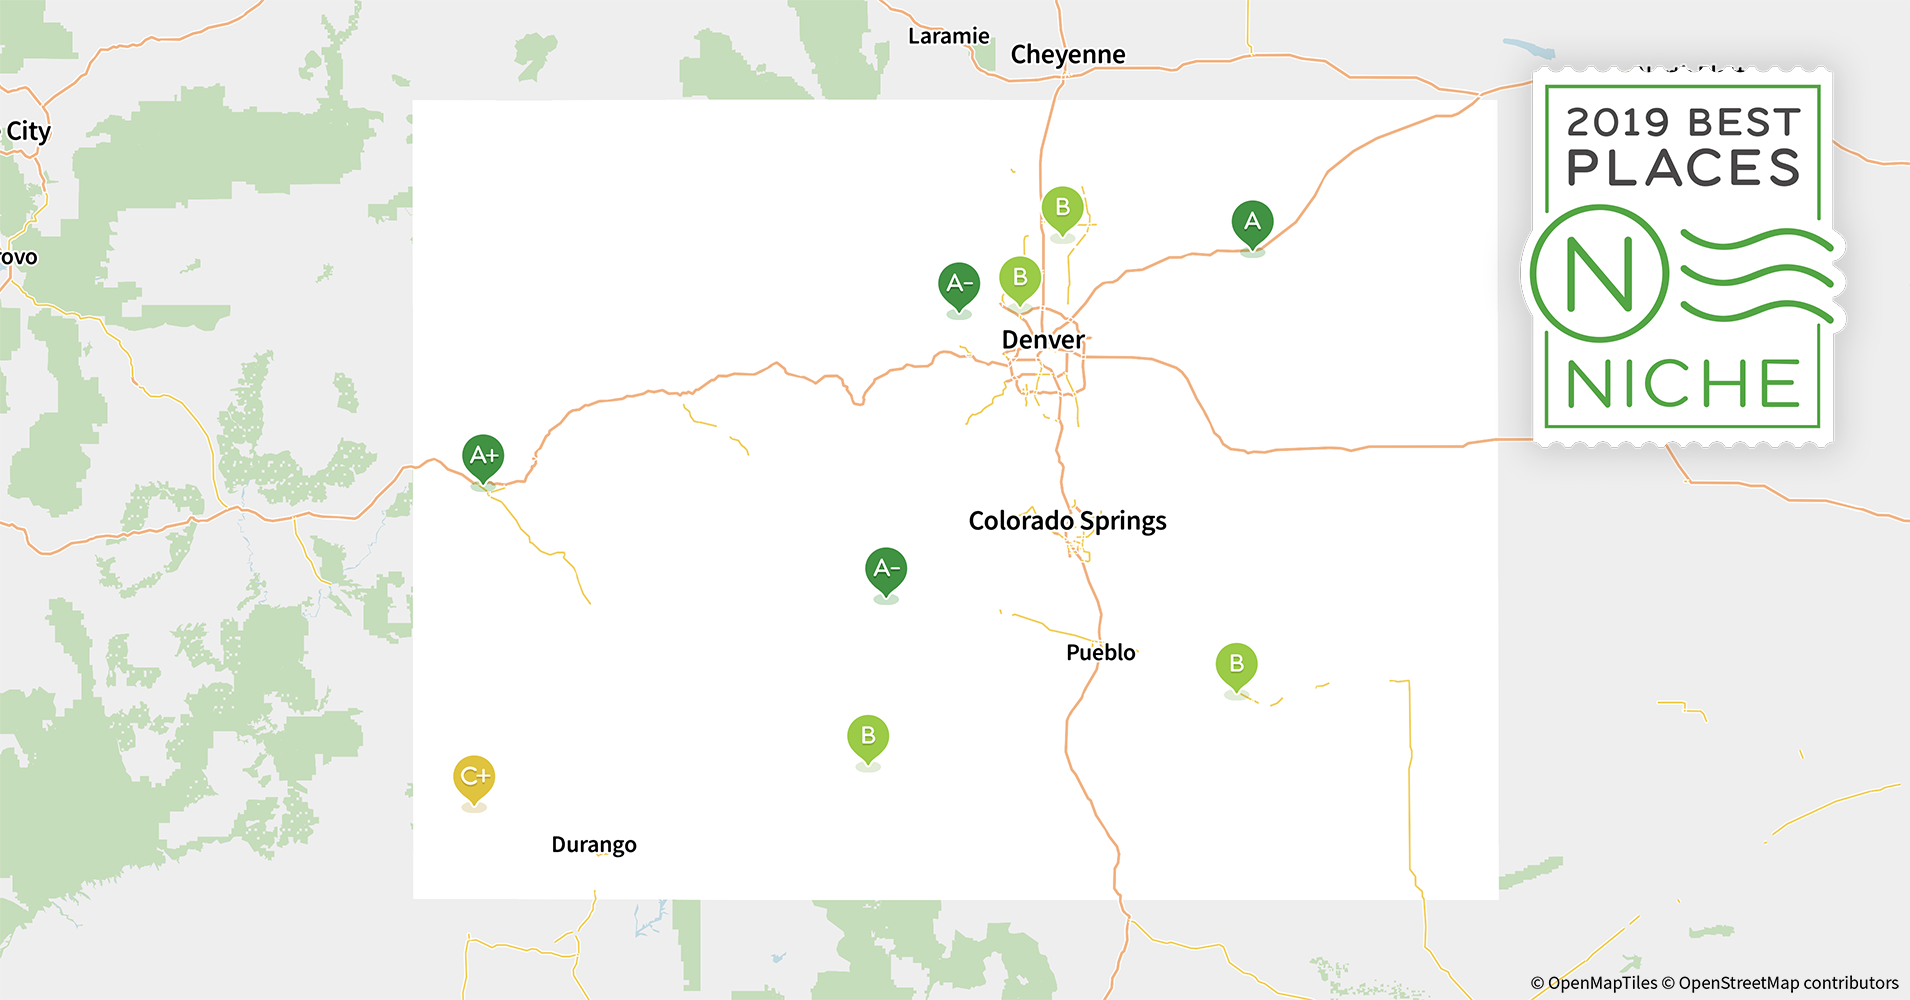 2019 Best Suburbs to Live in Colorado - Niche Denver Suburbs Map on